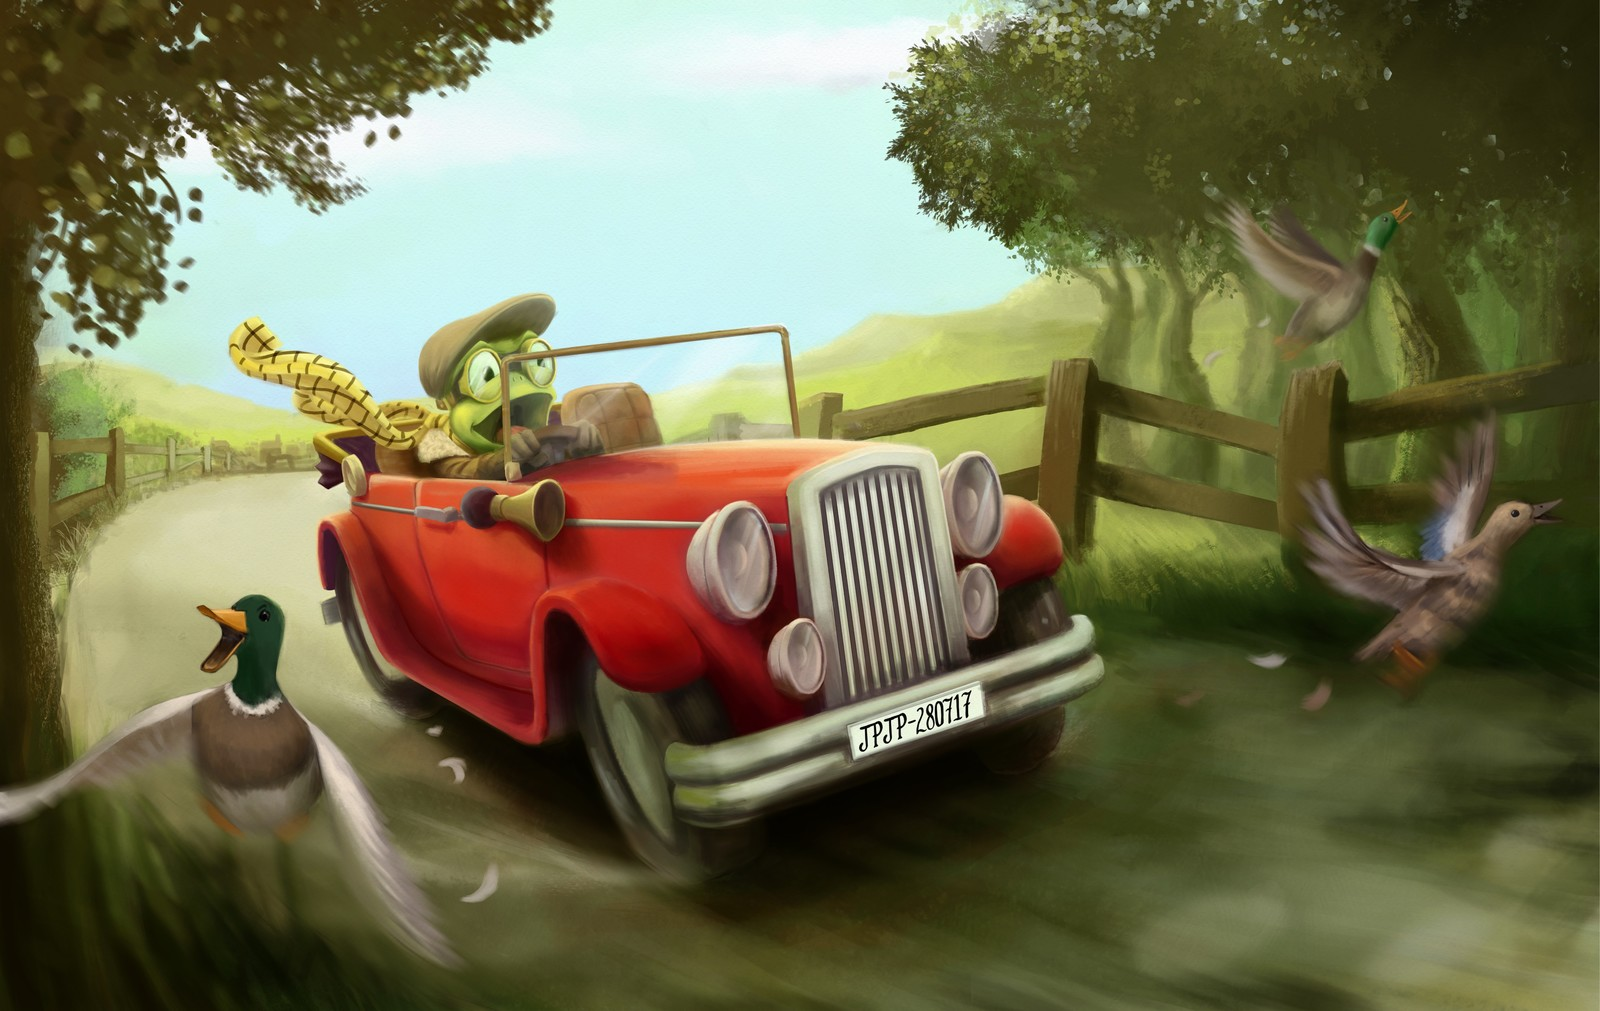 Mr Toad's Wild Ride